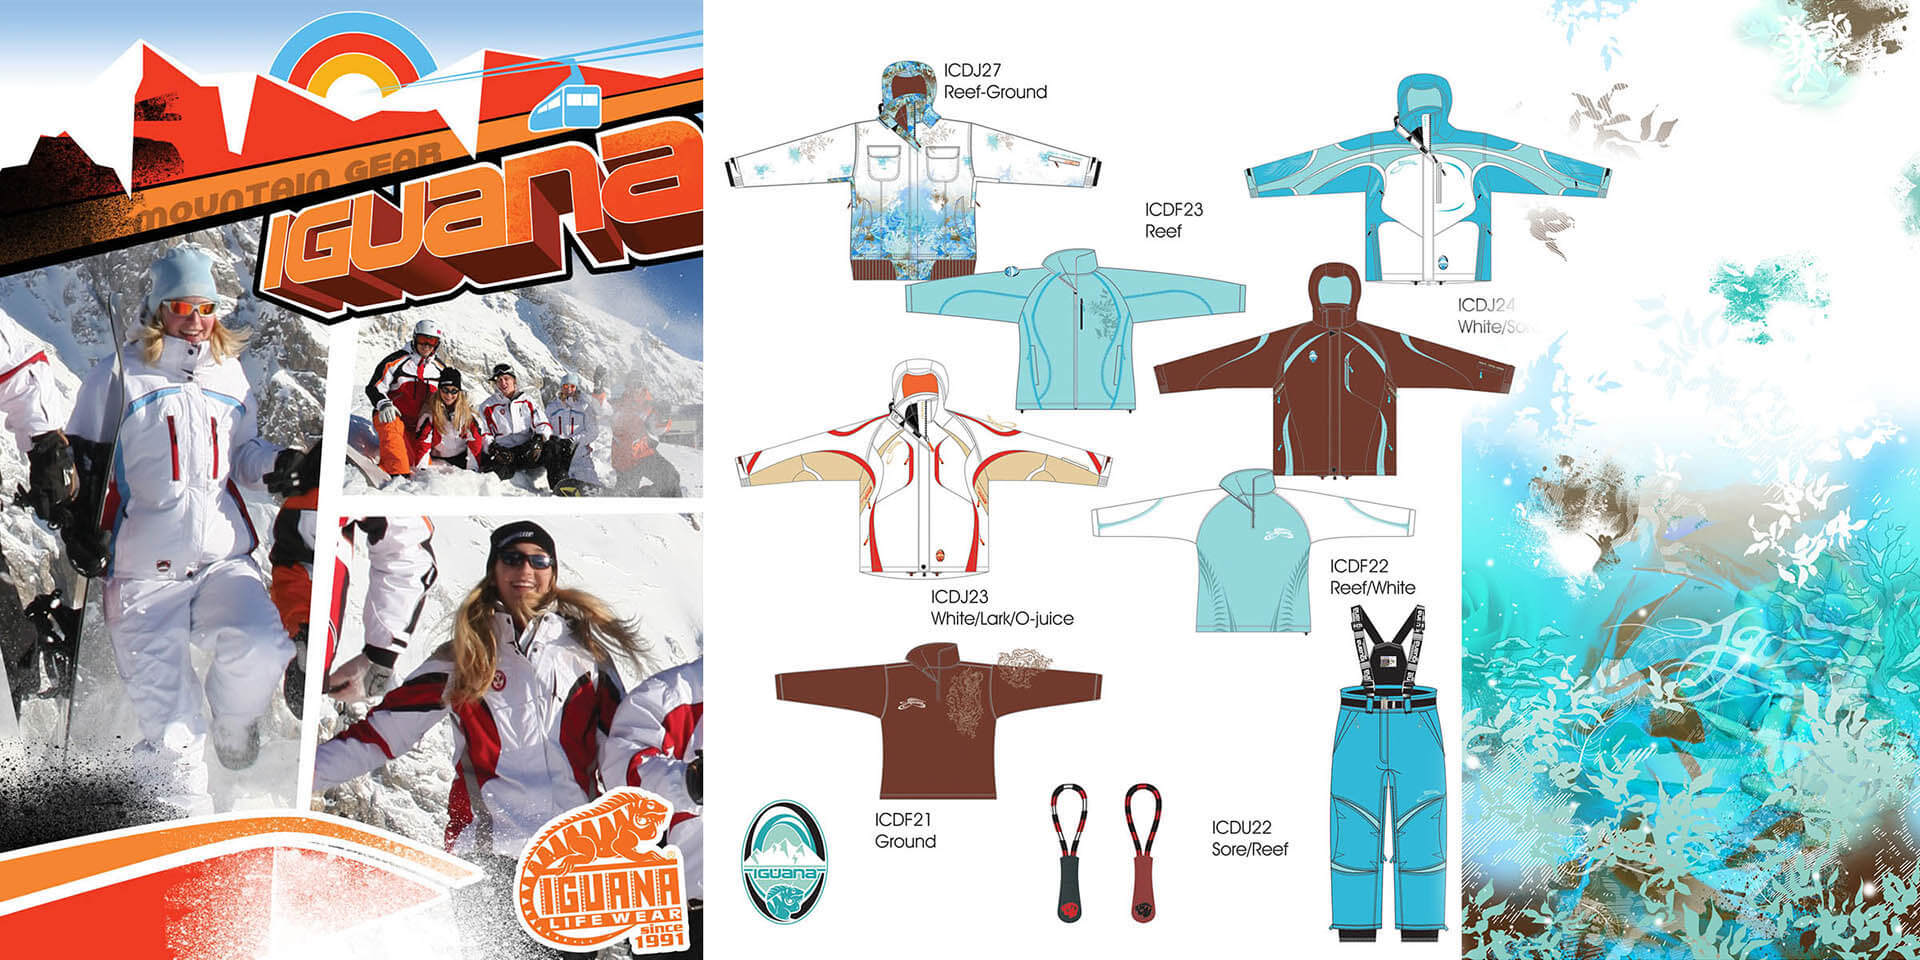 fashion combo 20 5ispo sport fashion ski snowboard race cross